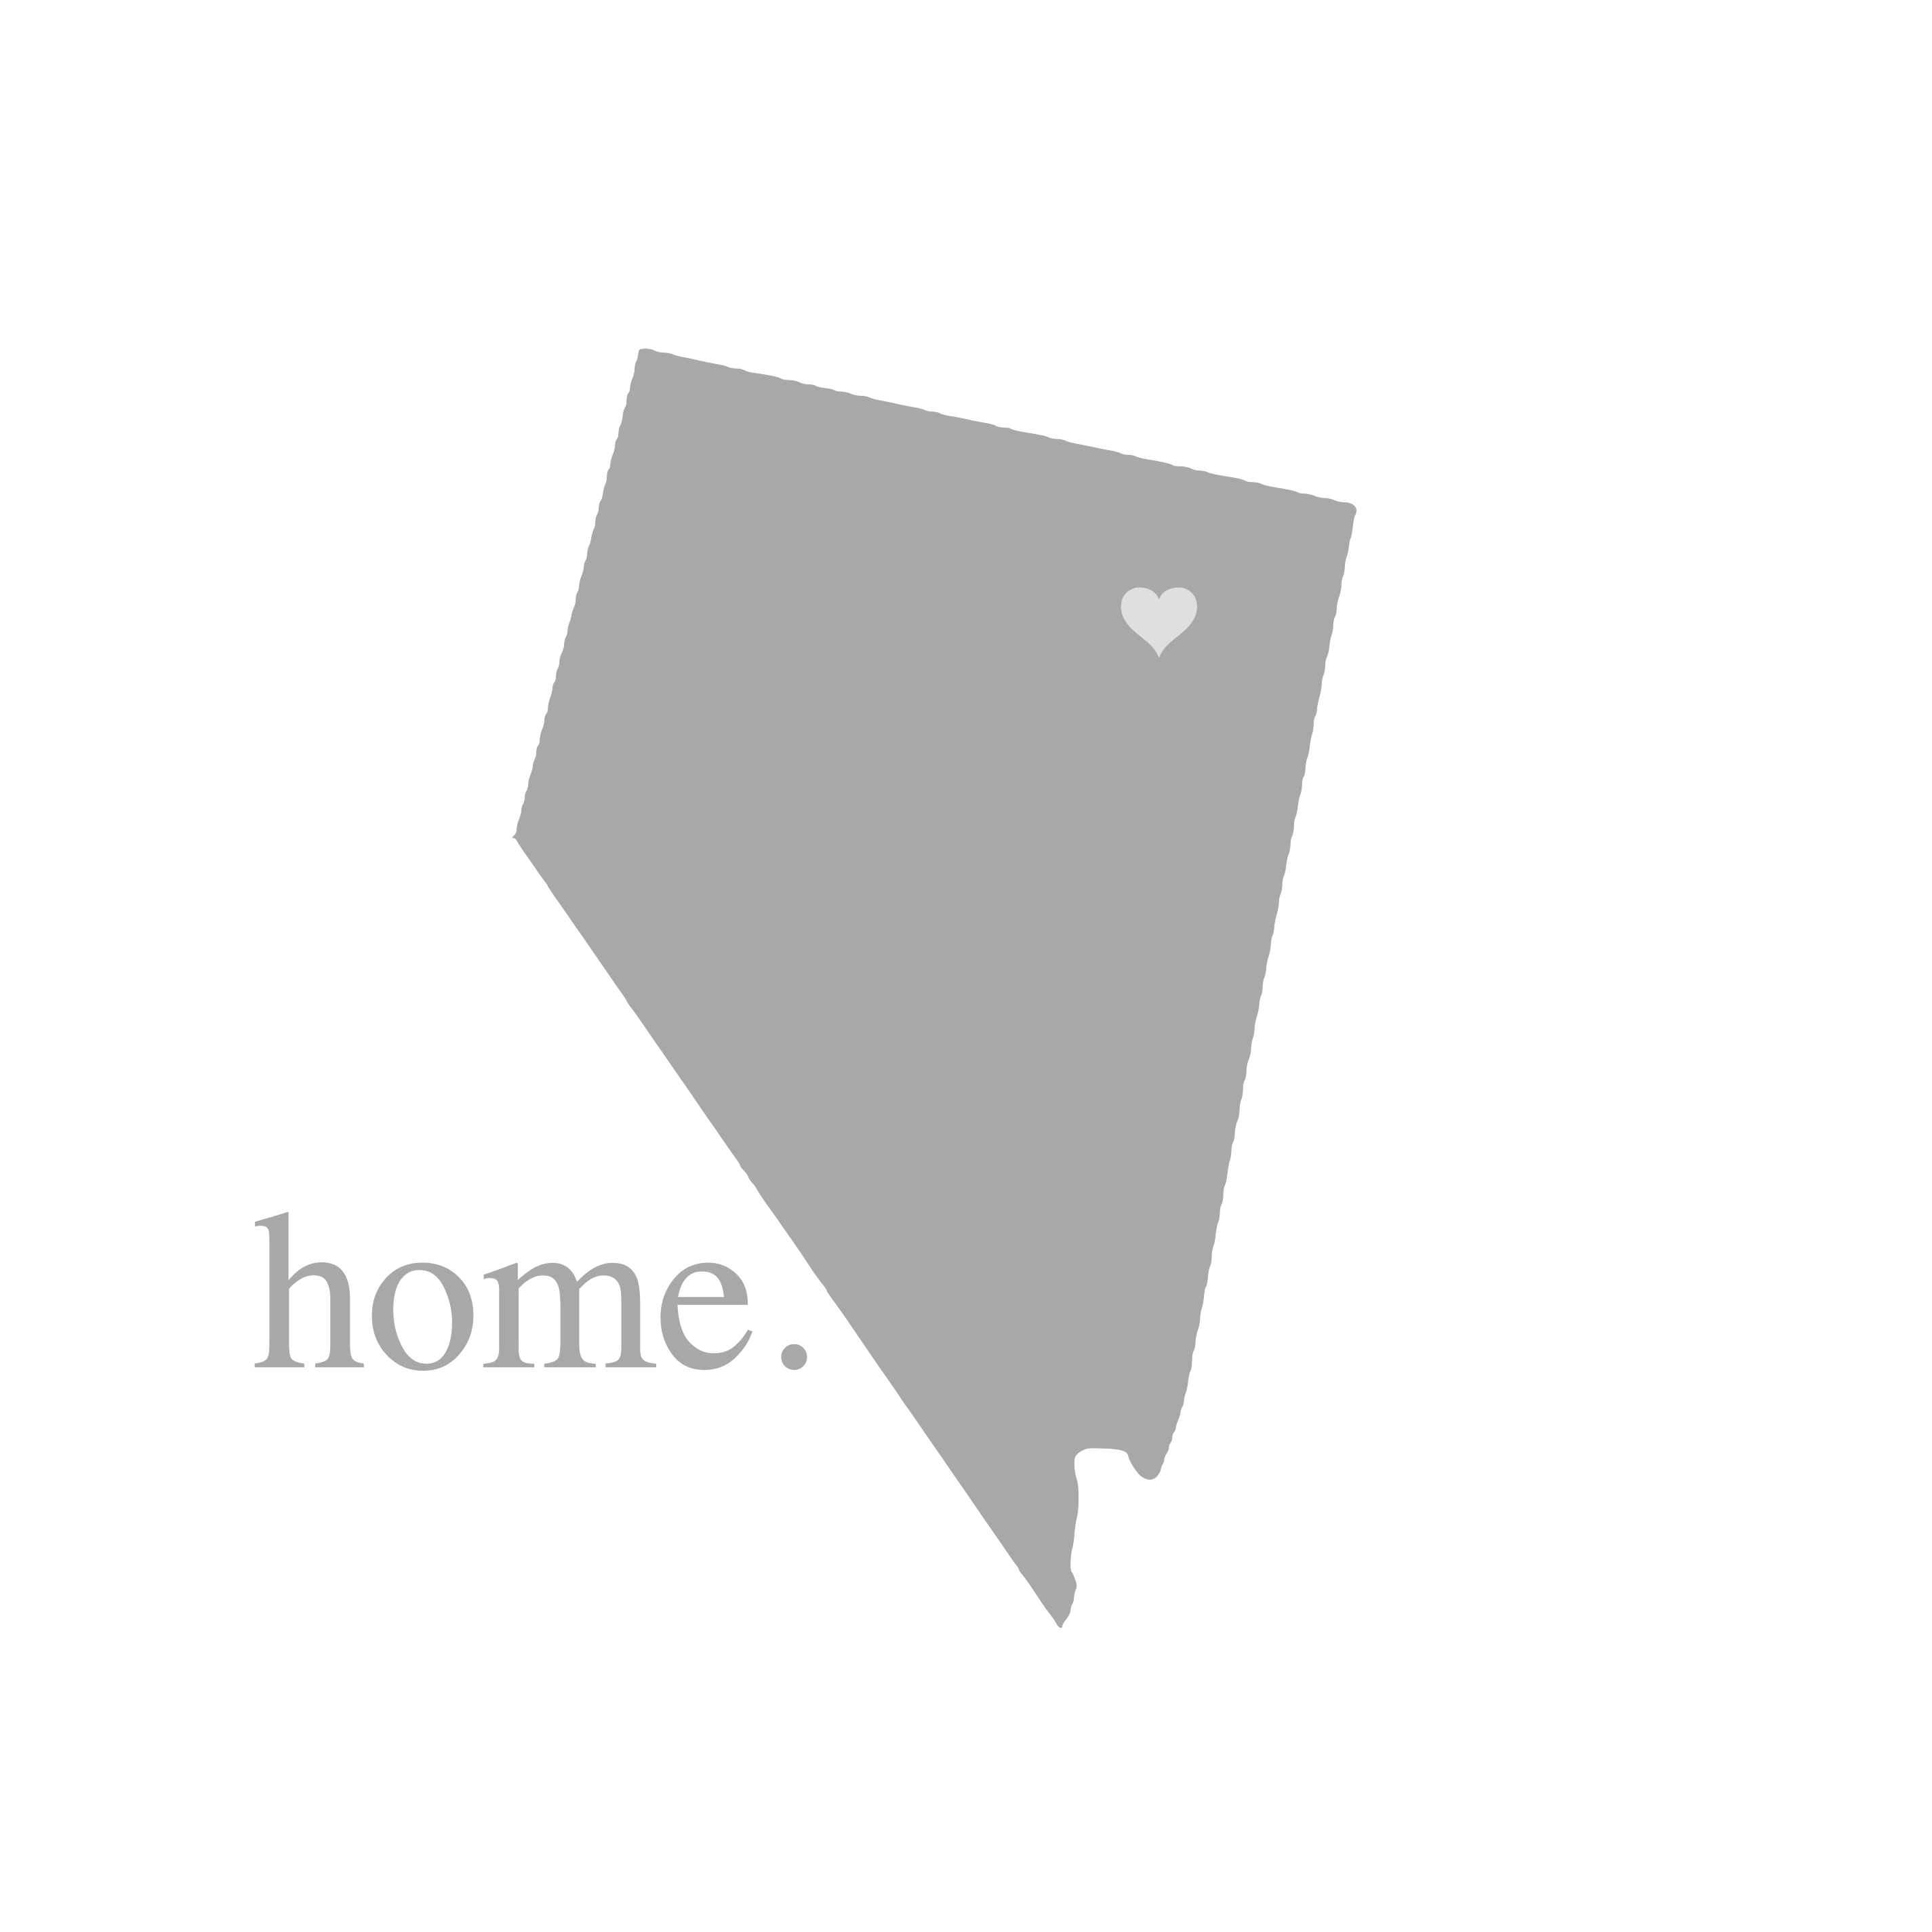 8270 Nevada Home State